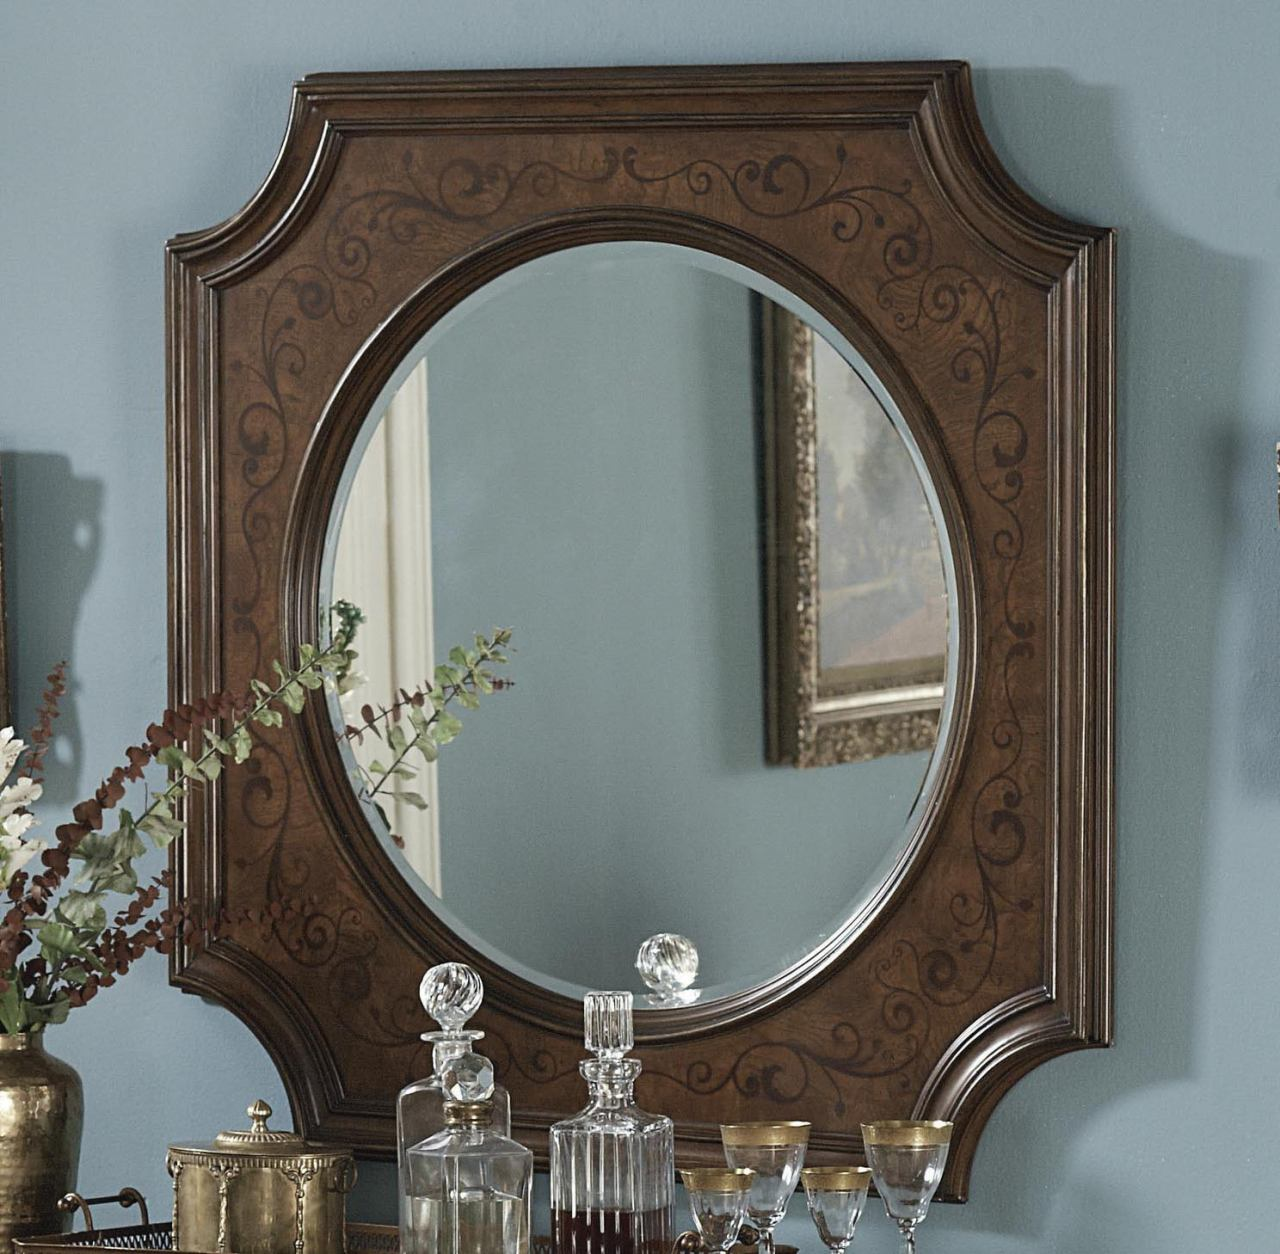 Homelegance Montvail Server Mirror in Cherry 2105-40M